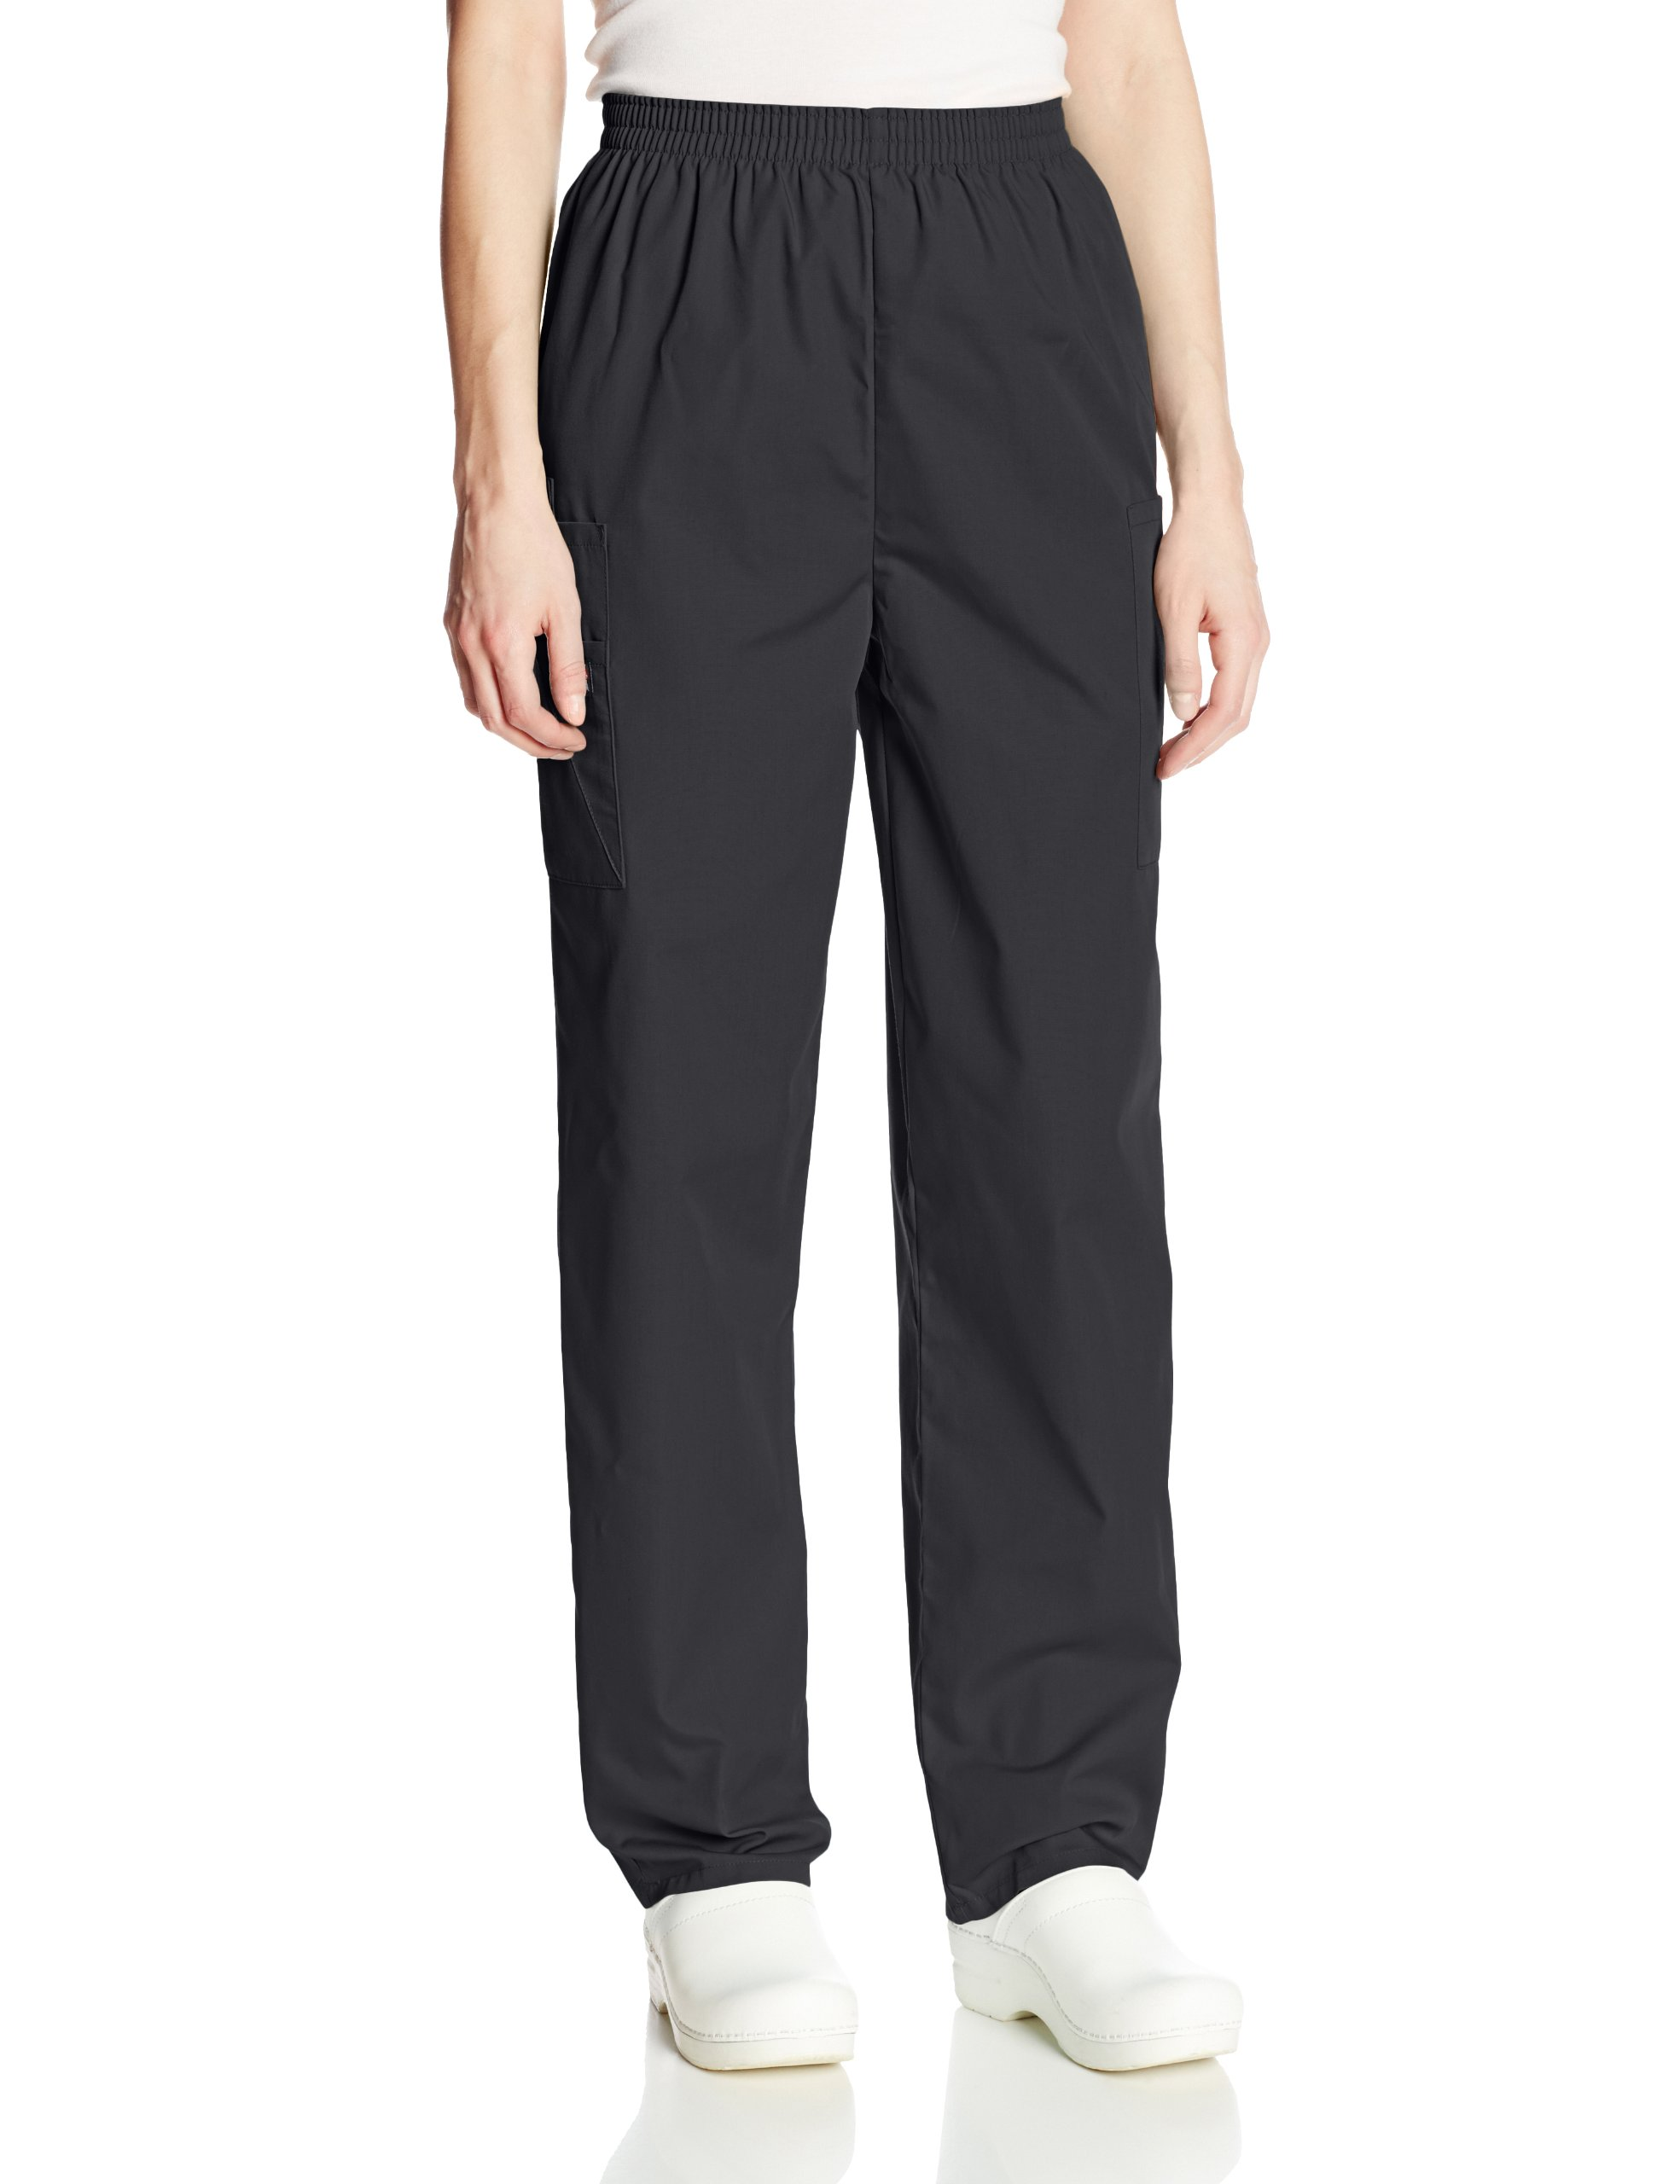 Cherokee Women's Workwear Scrubs Pull-On Cargo Pant, Black, Medium